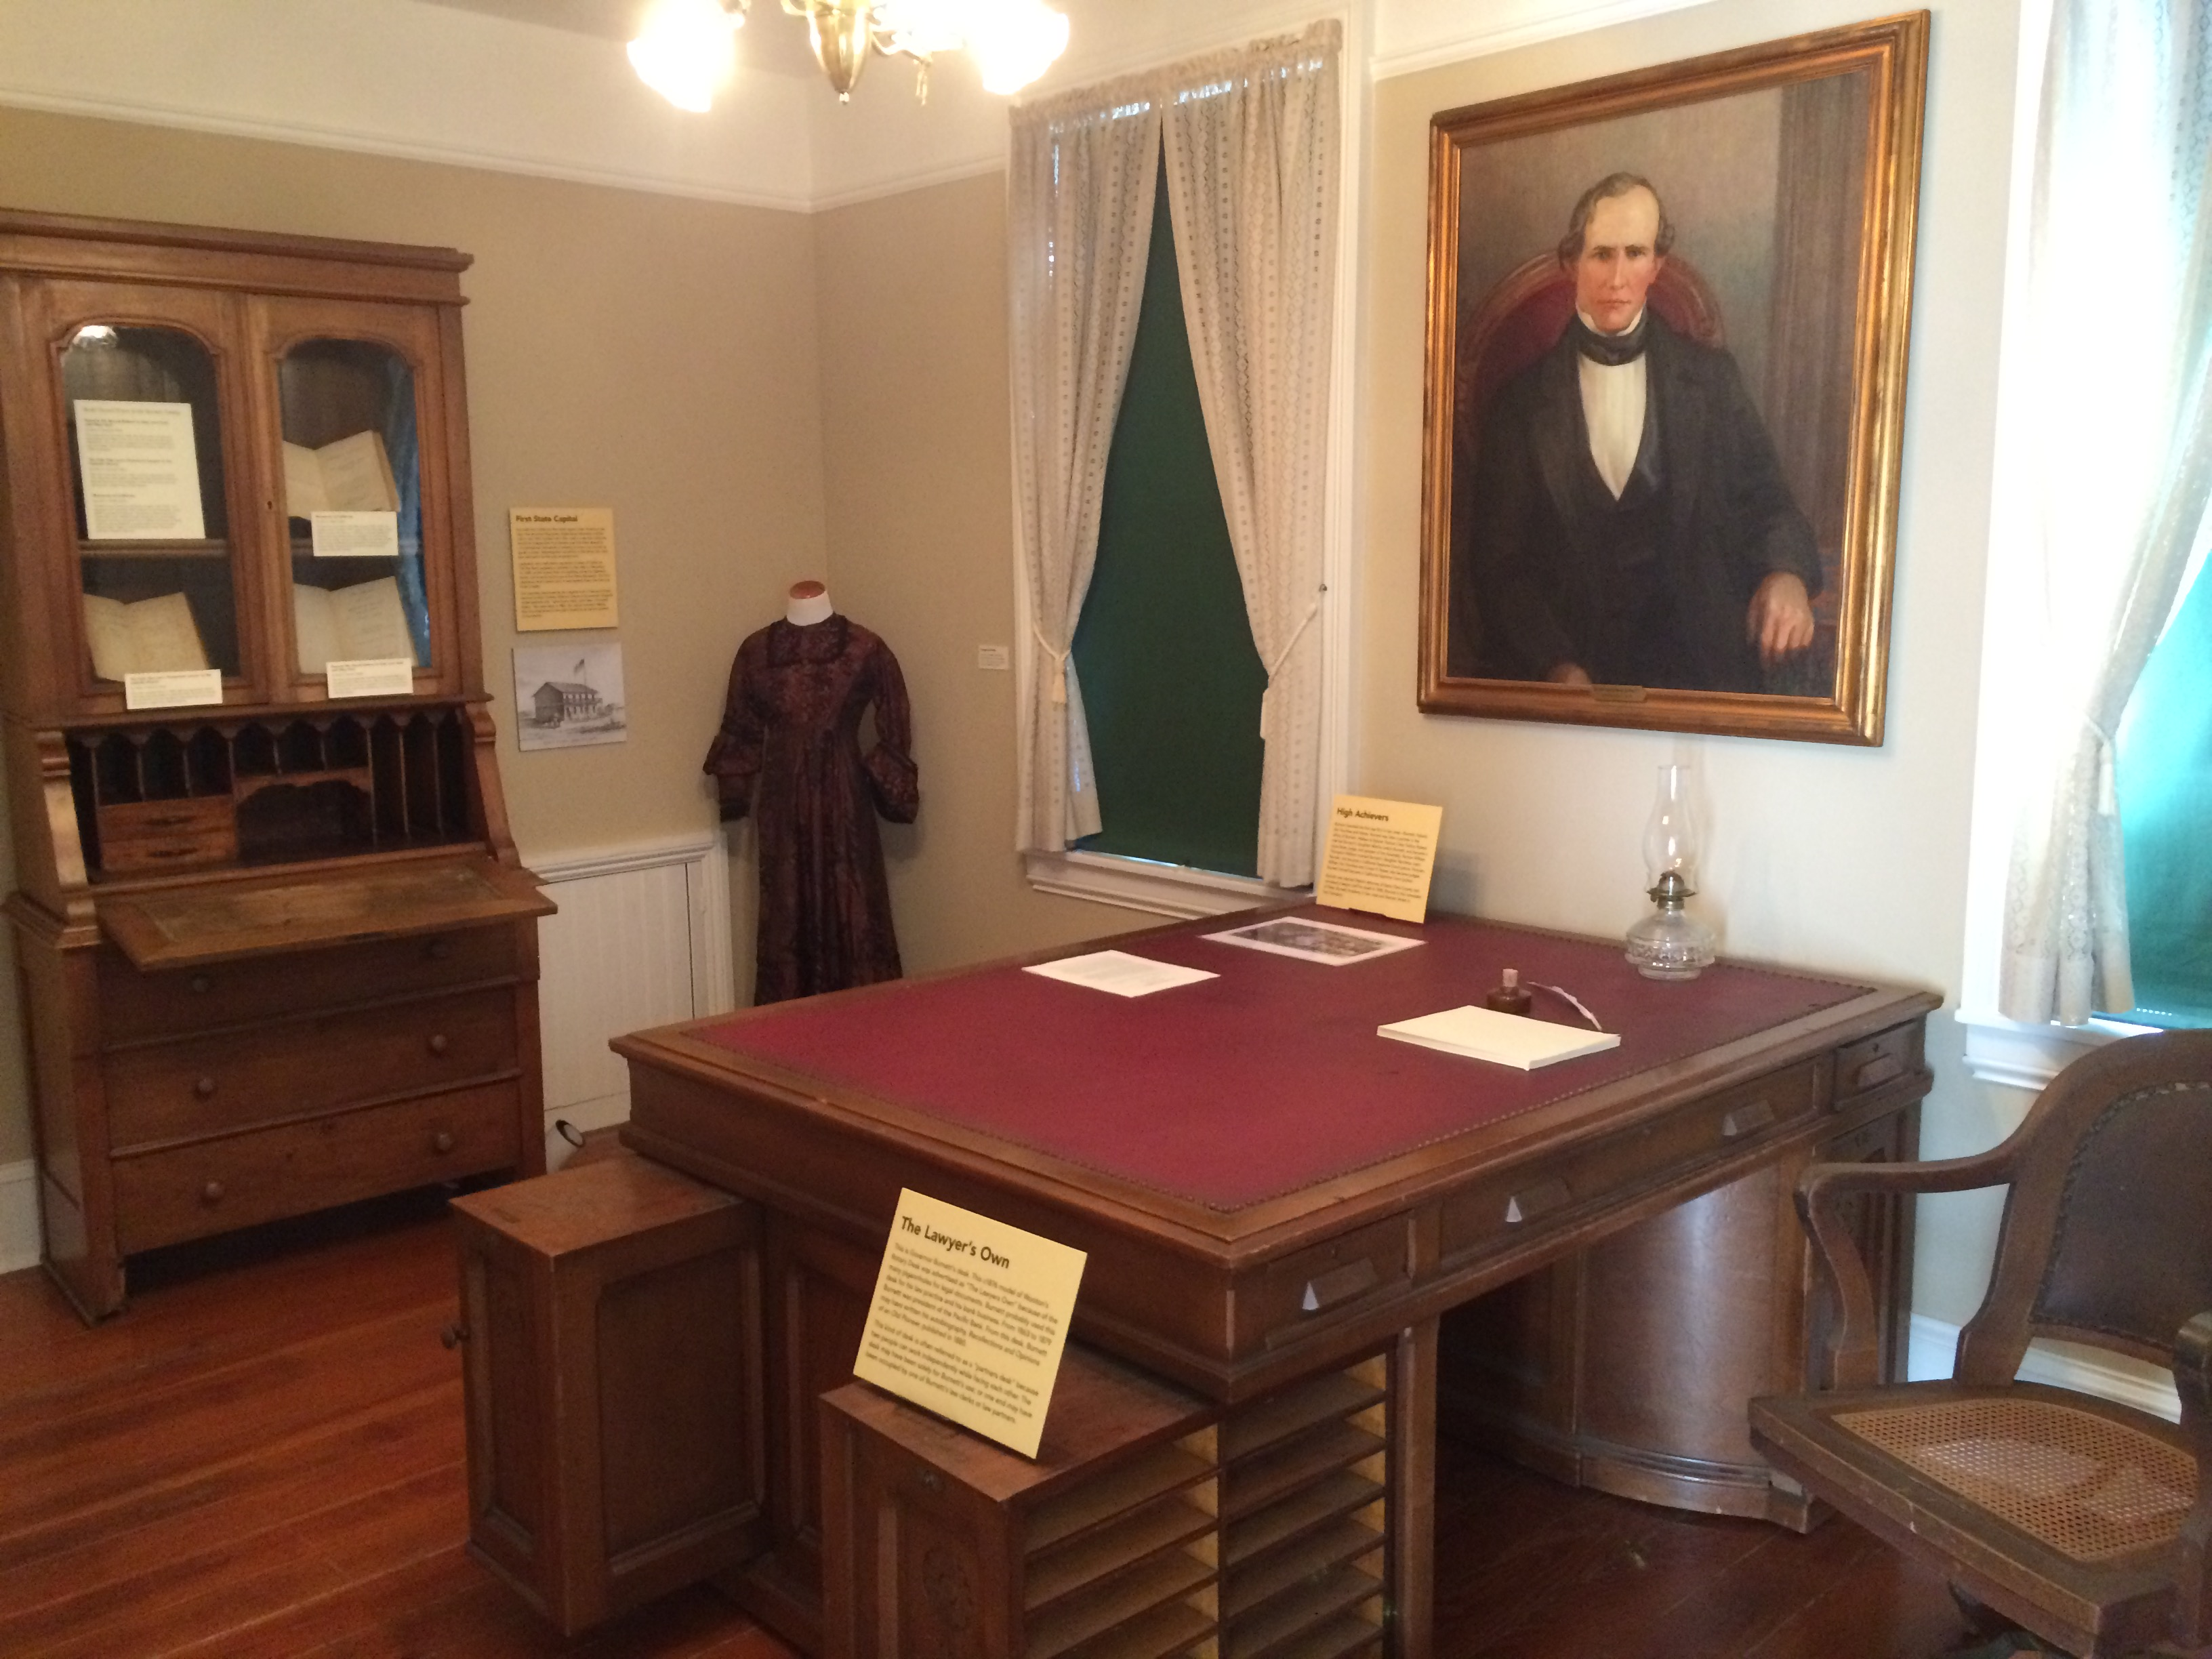 Burnett's desk: Finally a lead (Courtesy of Judge Paul Bernal, museum chair and official historian of the City of San Jose)